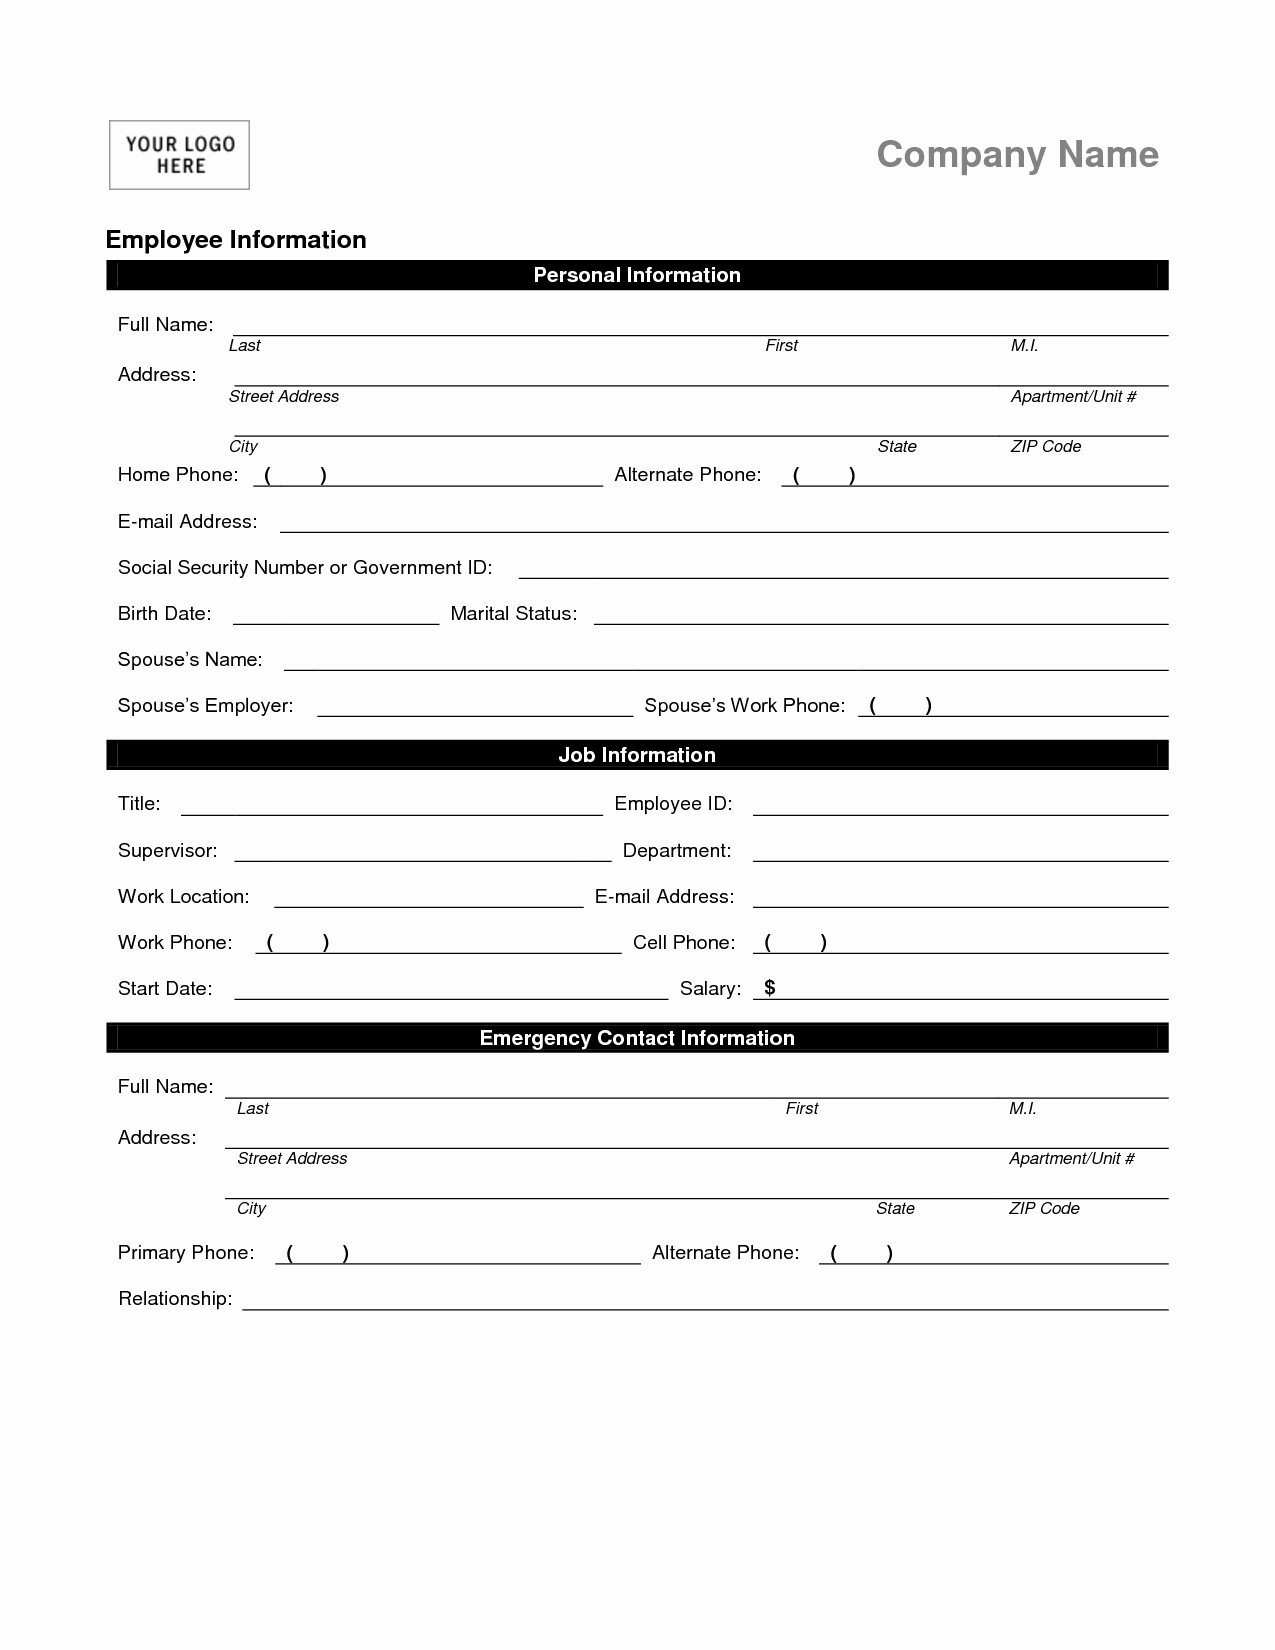 Employment Personal Information forms Lovely Employee Personal Information form Template